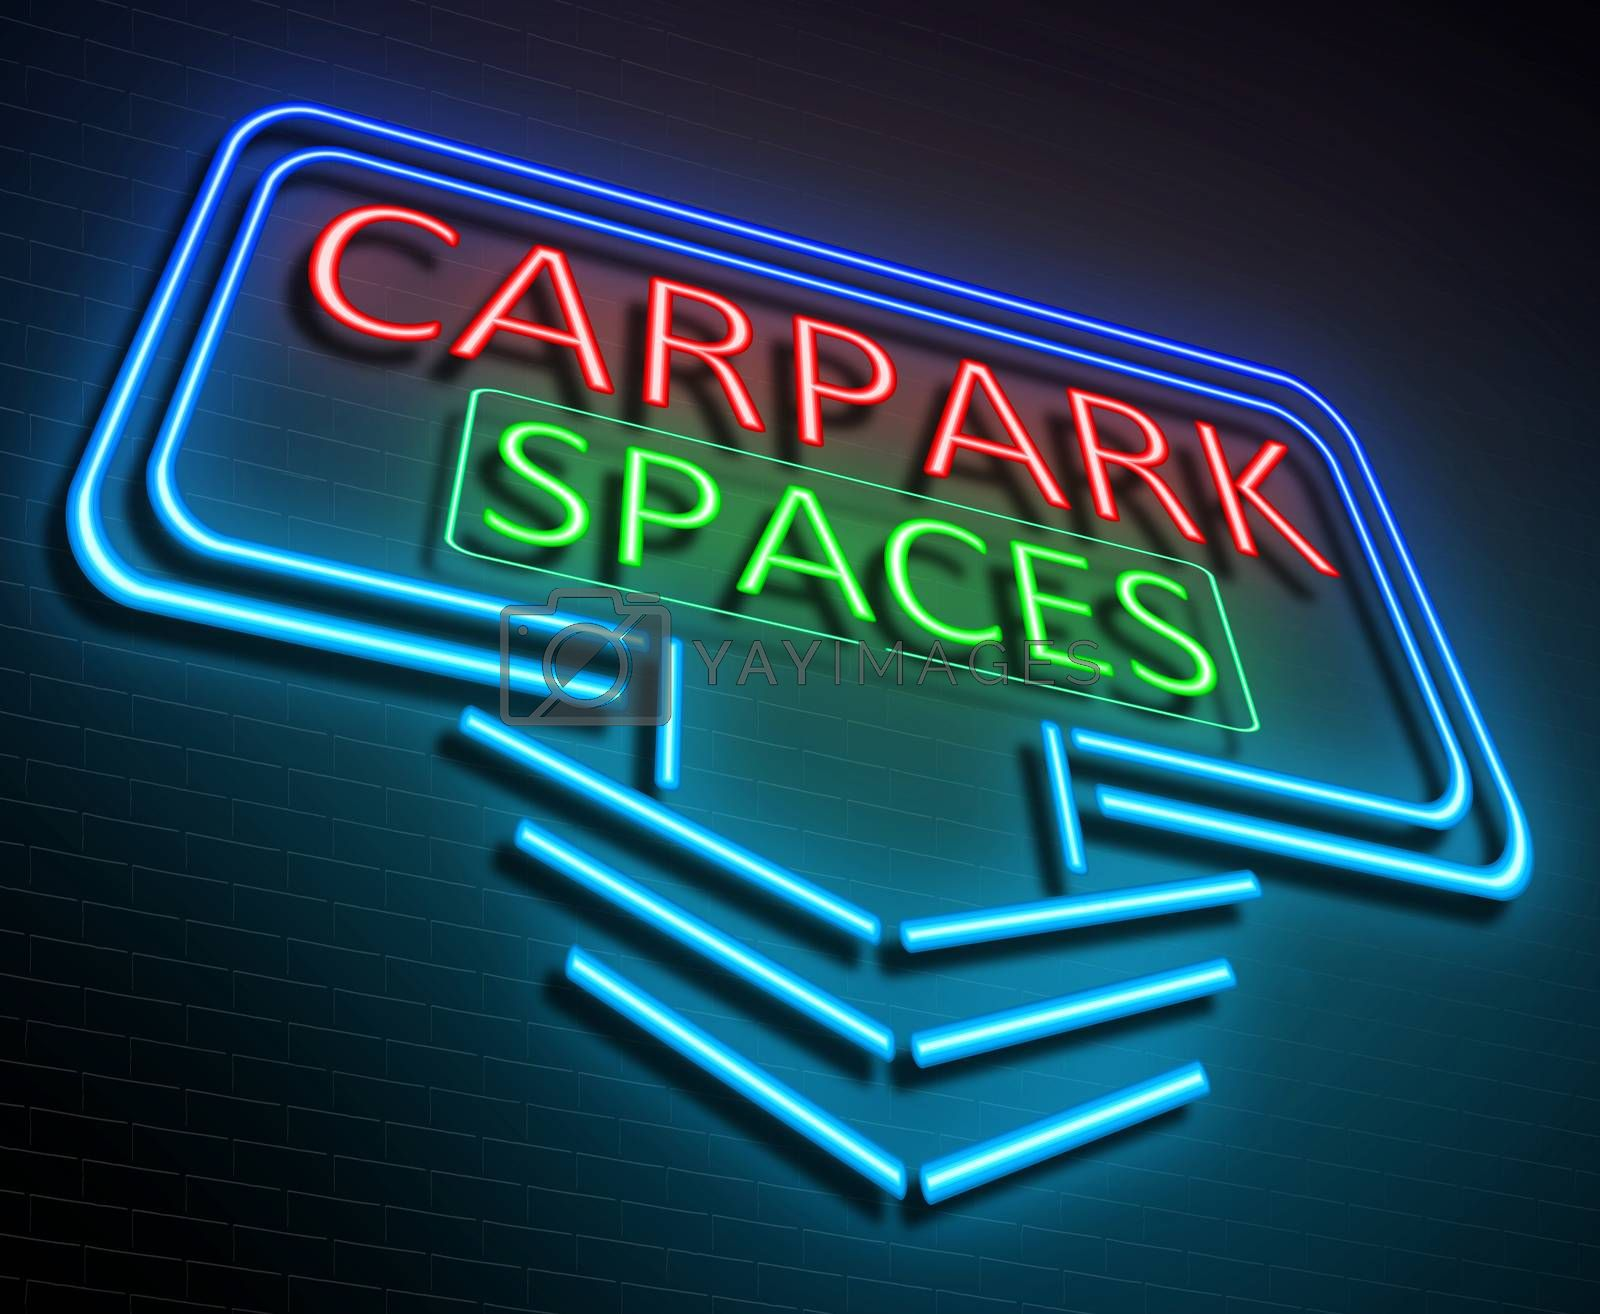 Illustration depicting an illuminated neon sign with a parking concept.